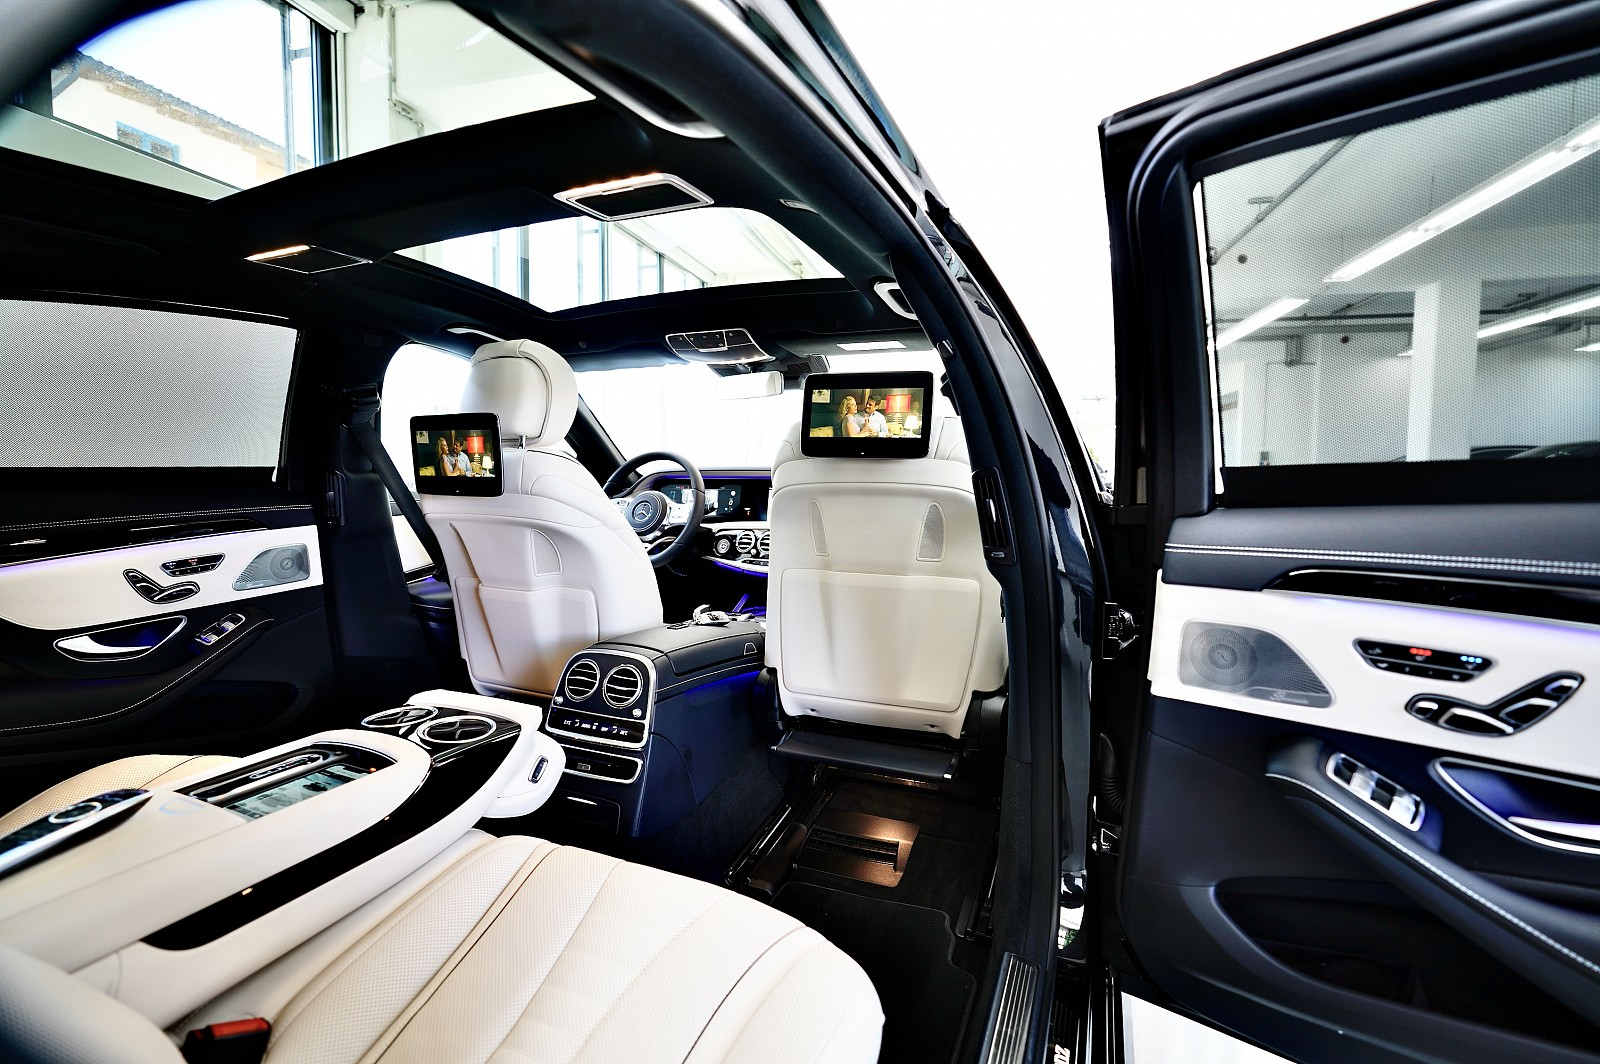 MERCEDES-BENZ S 560 4MATIC Long-amg CHAUFFEUR PAKET + AMG LINE